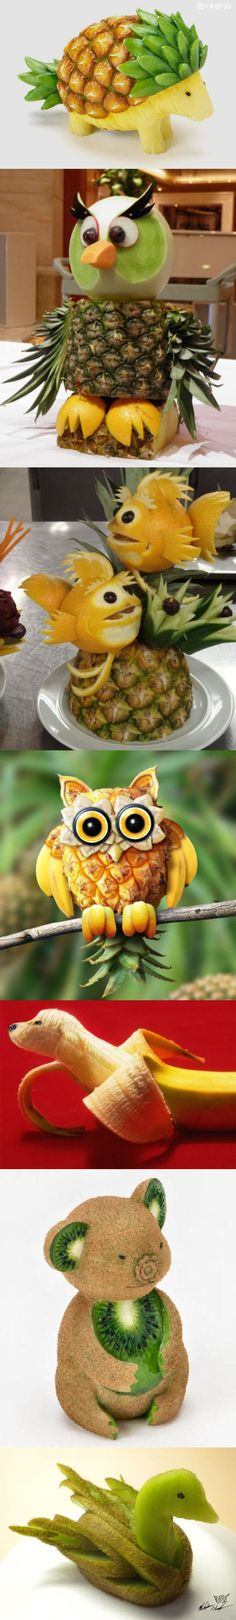 Animals made out of fruit...now that's a crafty food recipe! - 15 of the Best Edible Sculptures